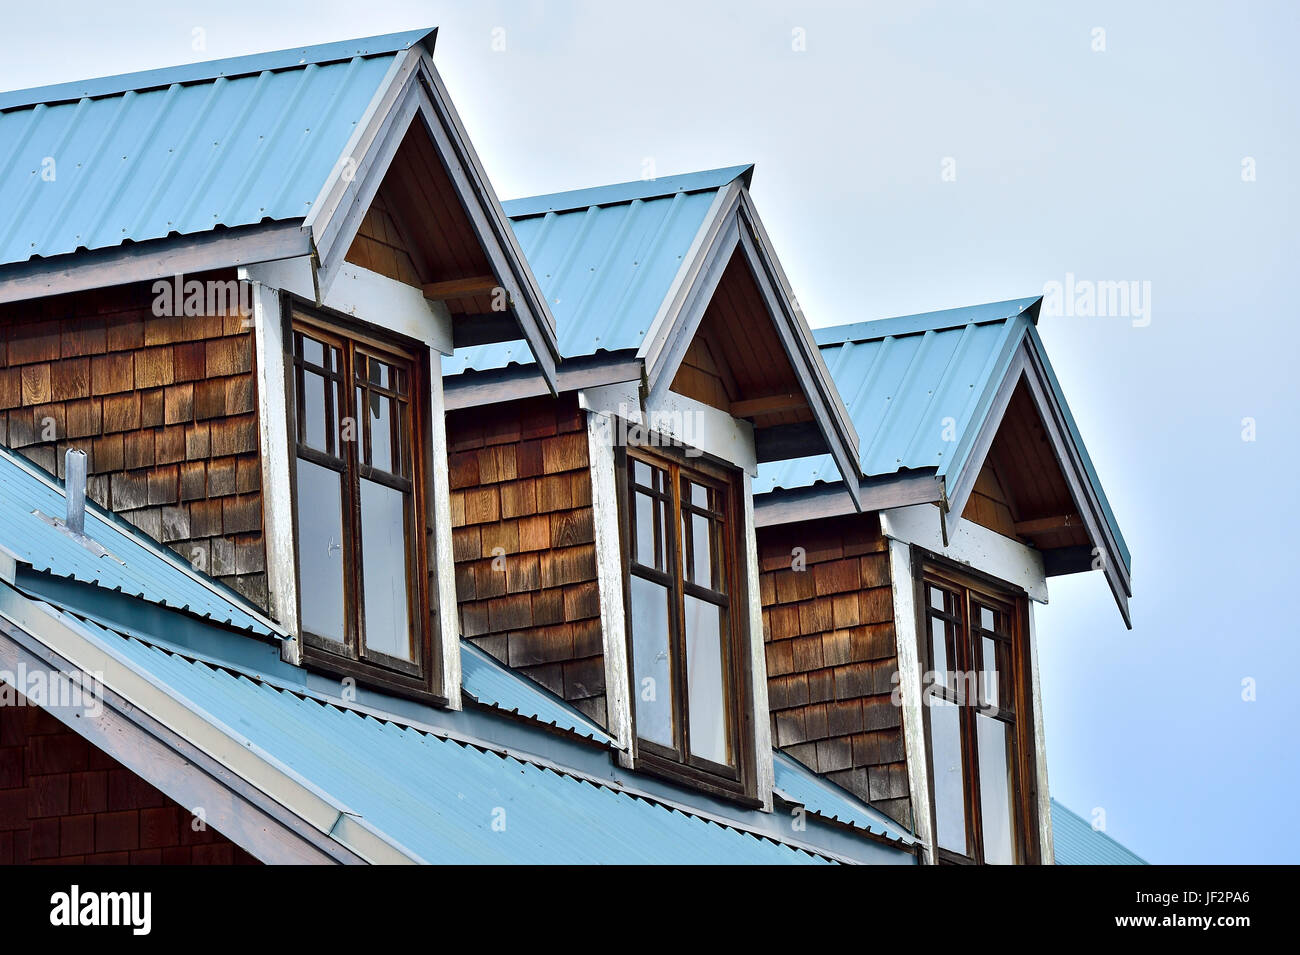 A Cottage Roof With Three Extended Windows On Vancouver